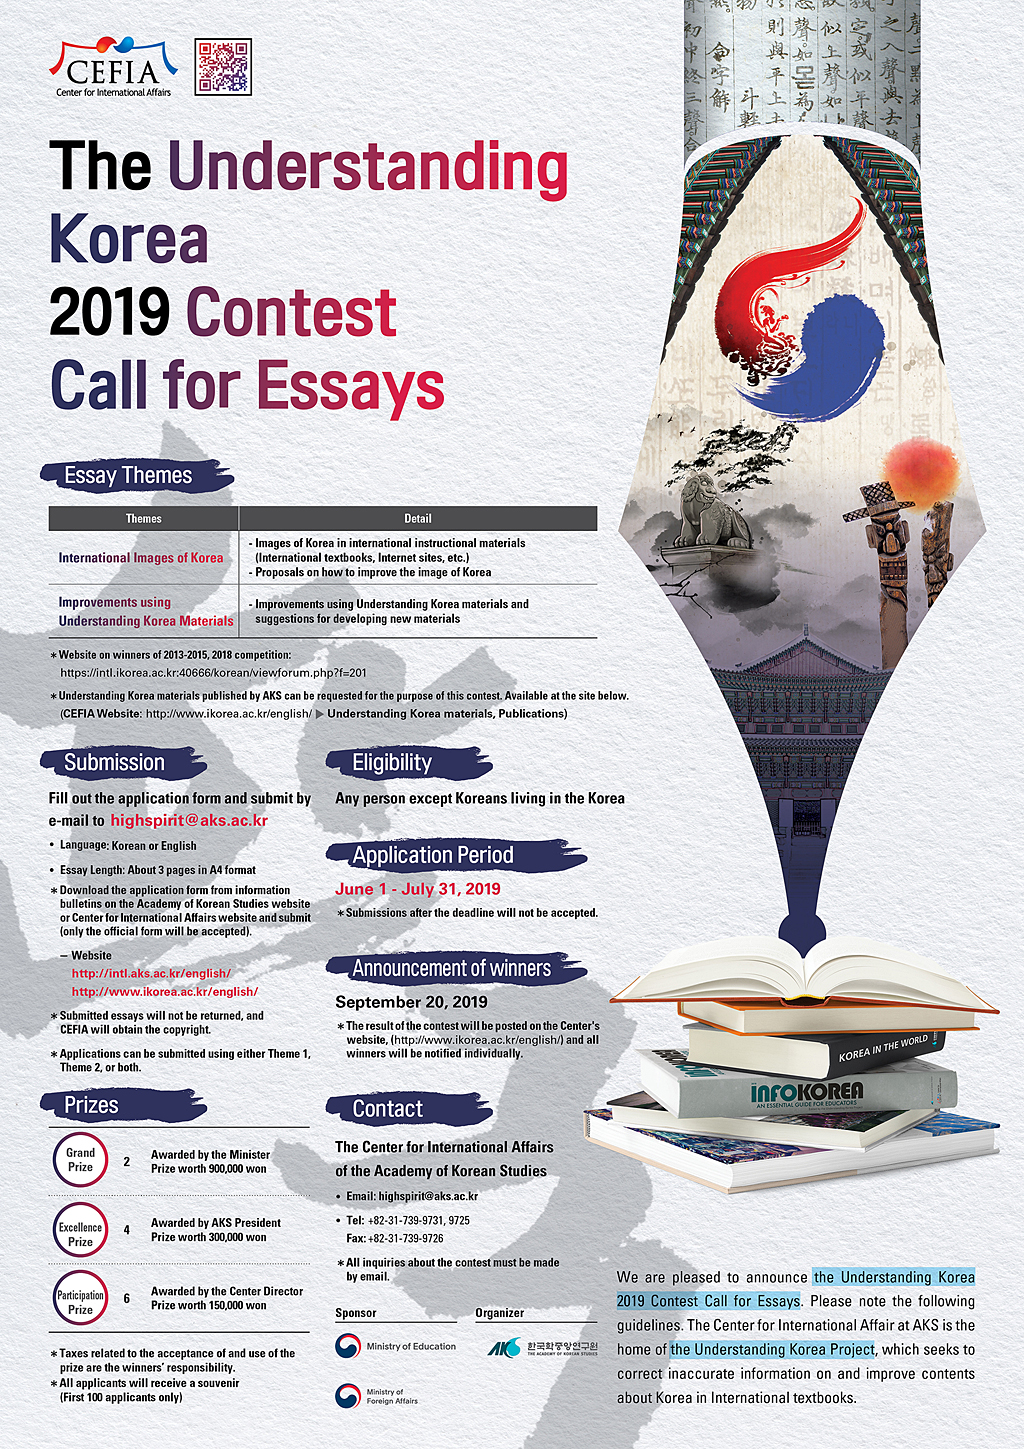 The Understanding Korea 2019 Contest Call for Essays